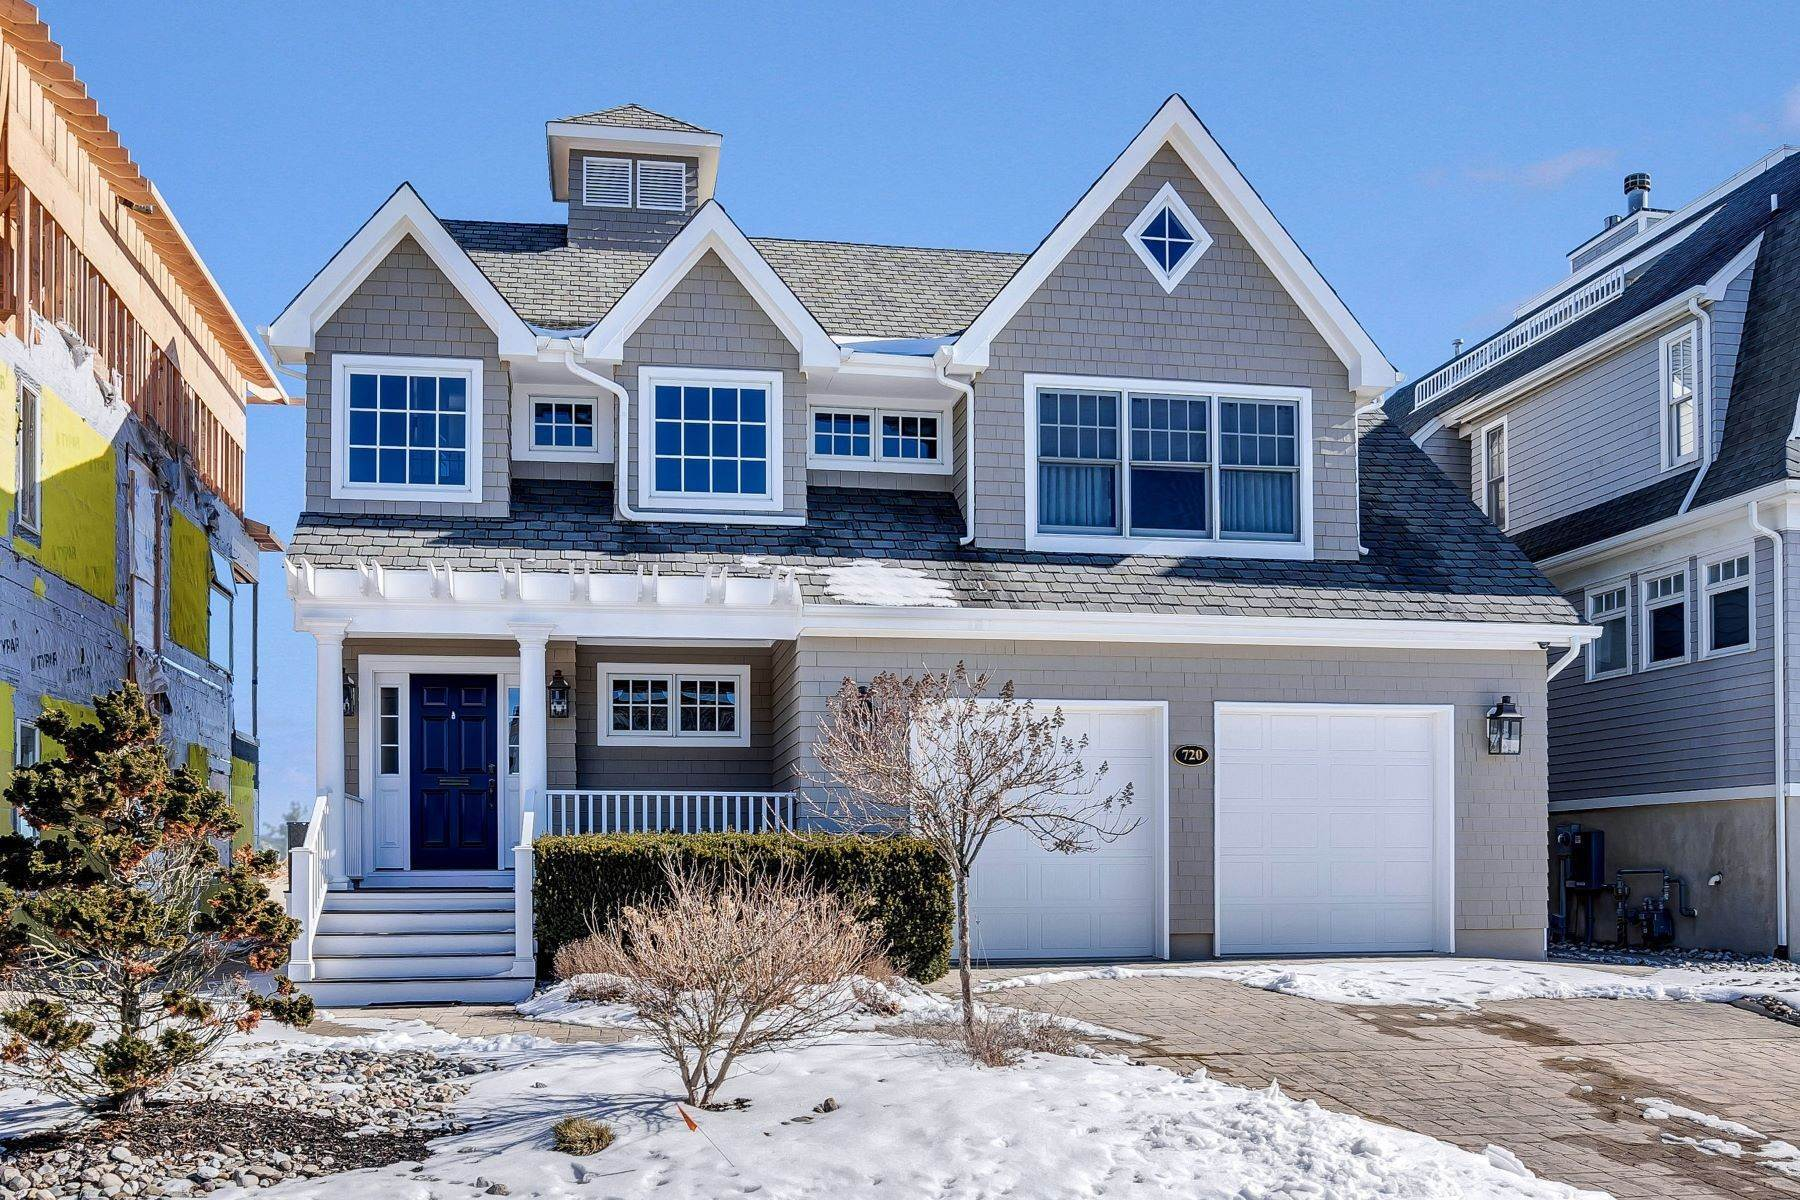 Single Family Homes em Seasonal Rental in Sea Girt 720 Morven Terrace Sea Girt, Nova Jersey 08750 Estados Unidos